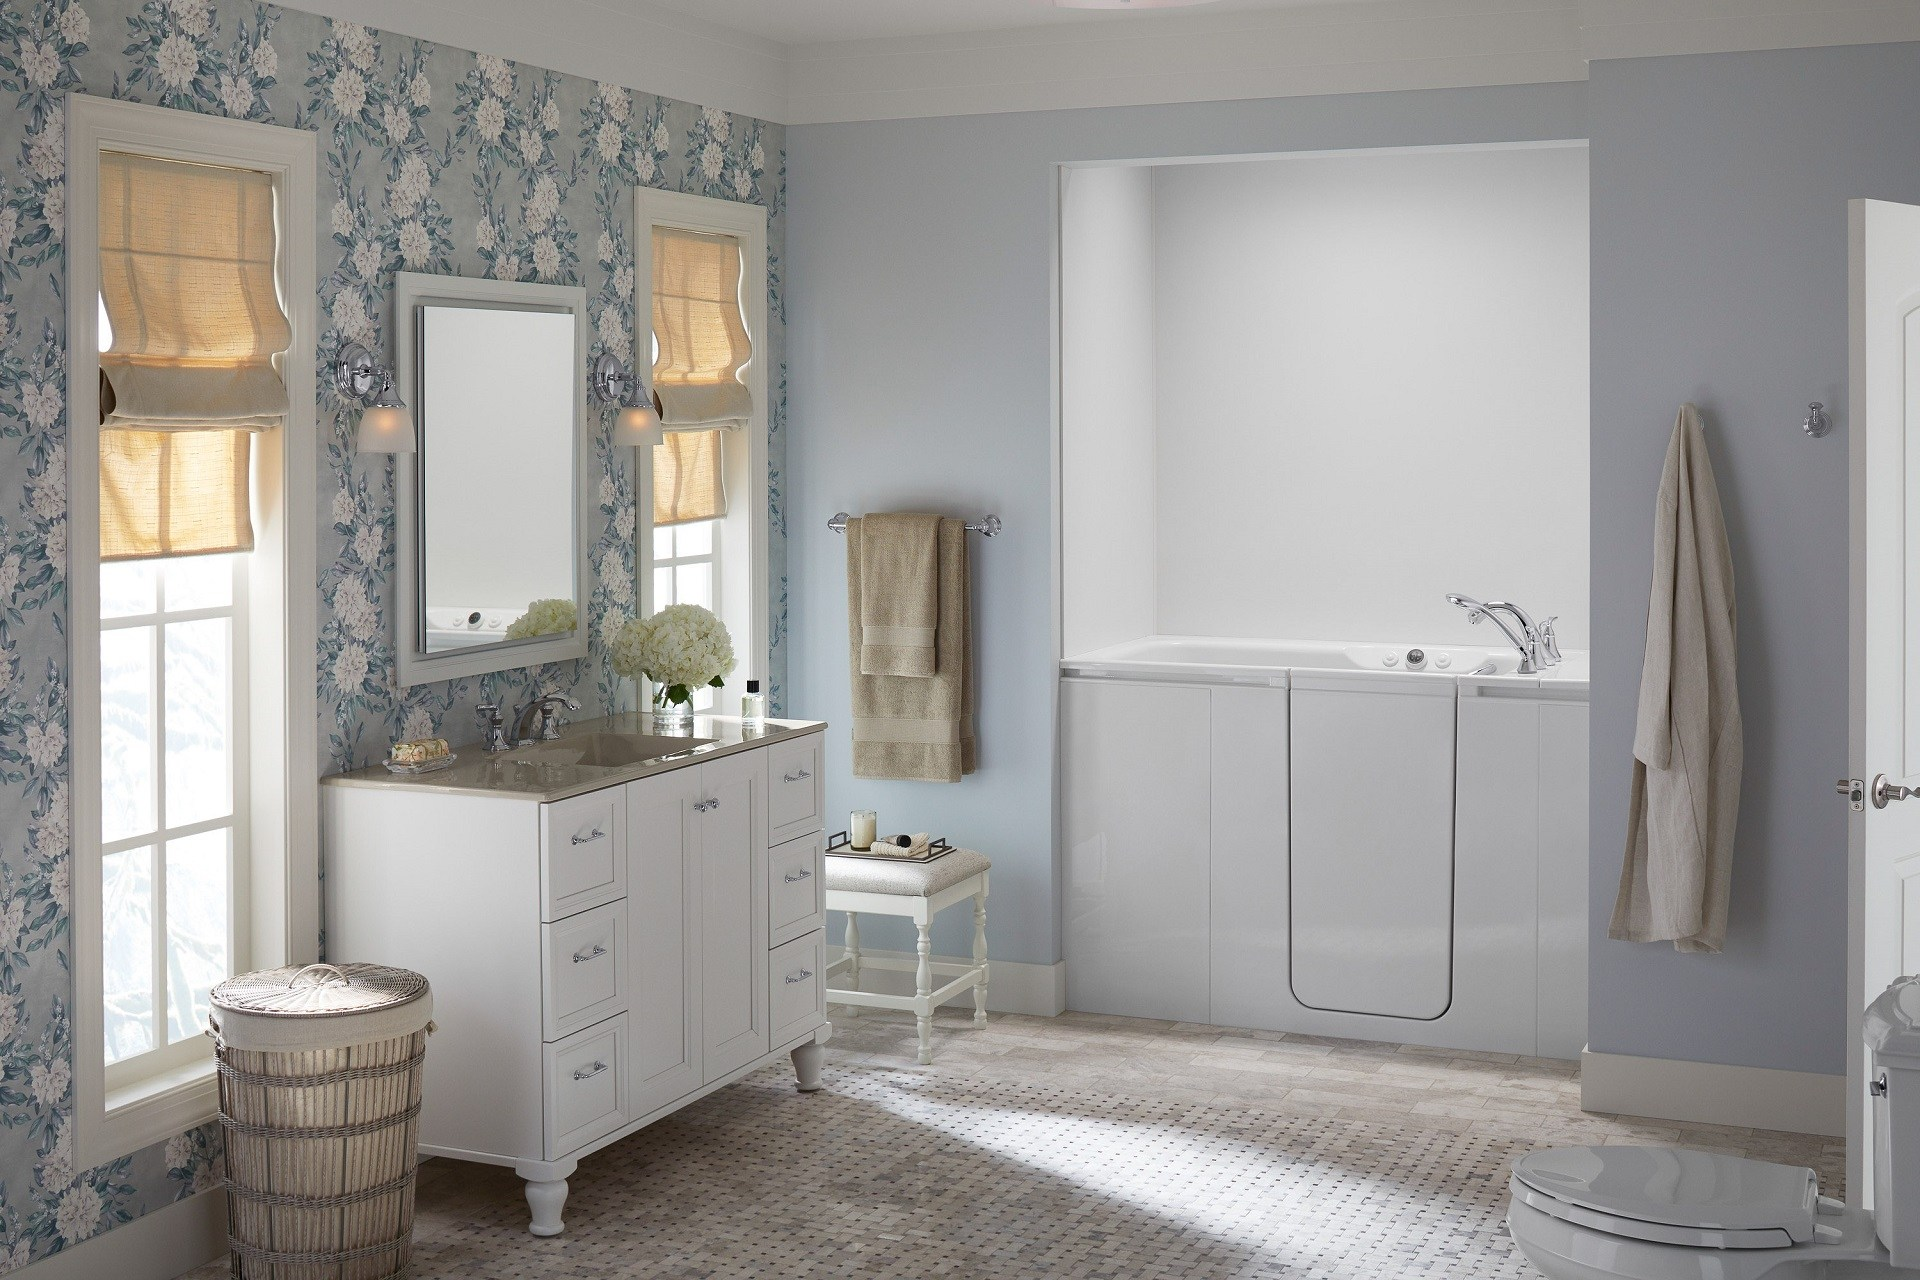 Shower To Tub Conversion Remodeling Benefits Home Smart